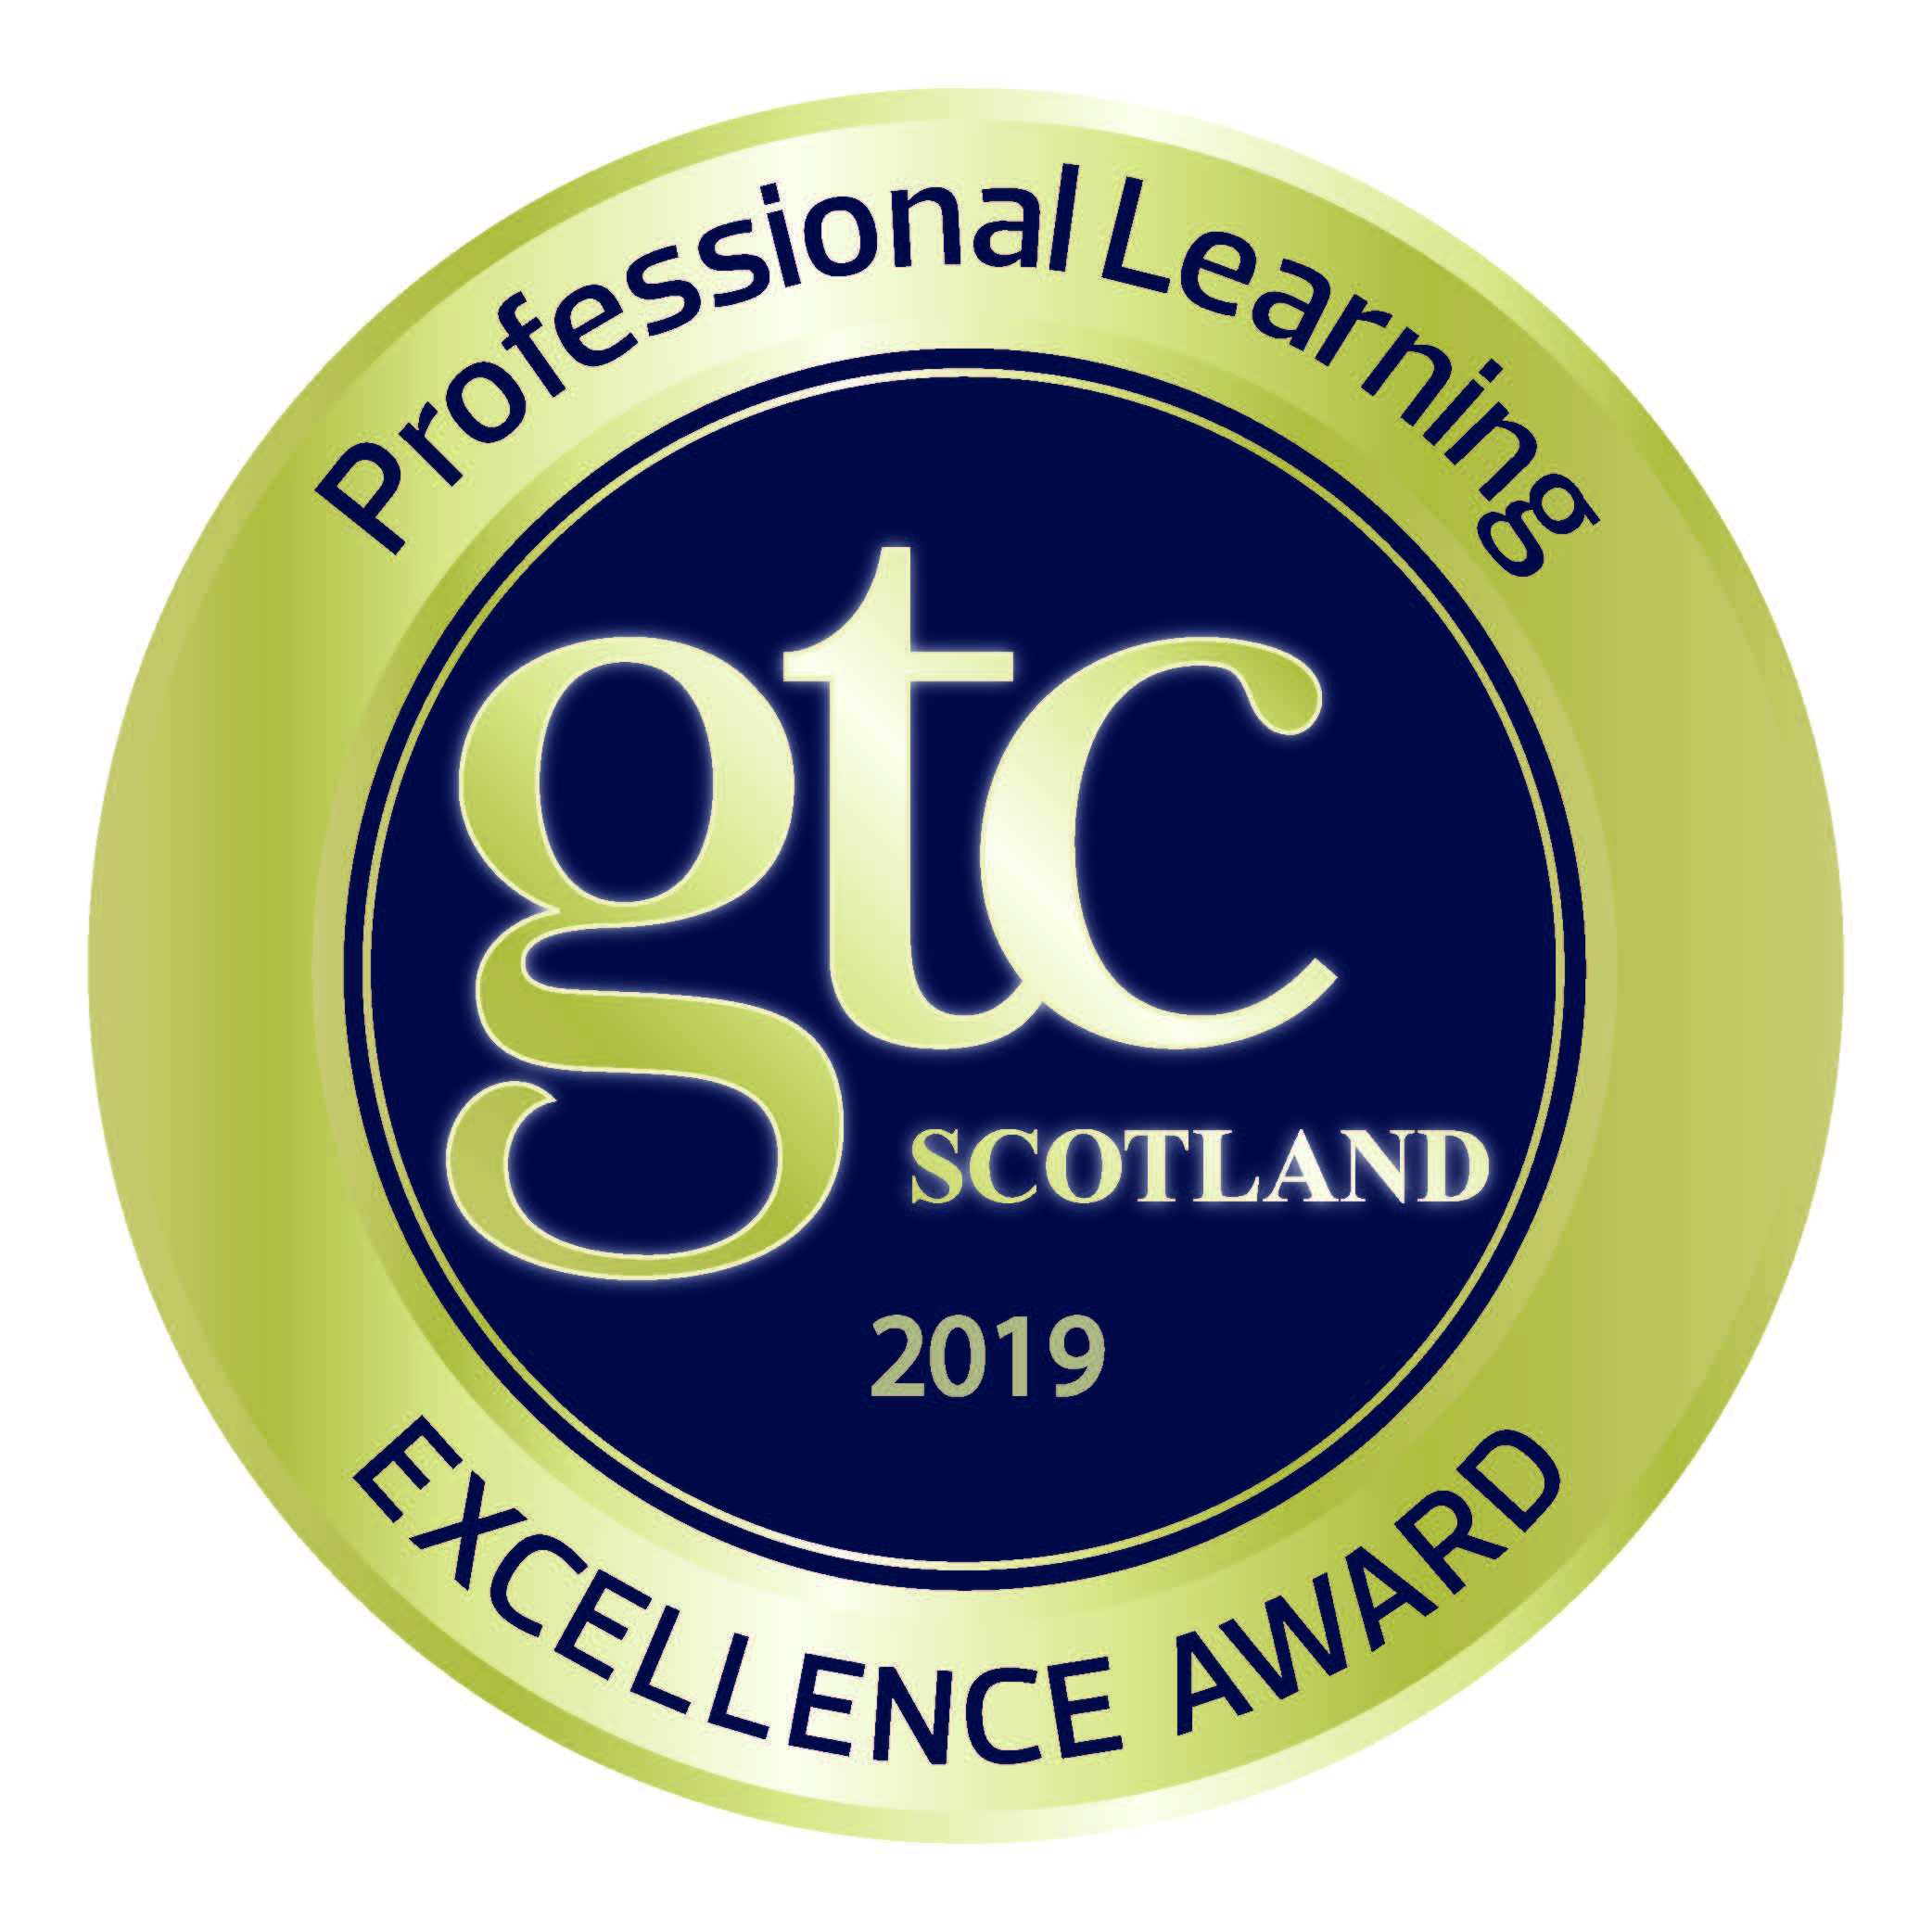 2019 gtcs excellence in professional learning award high res